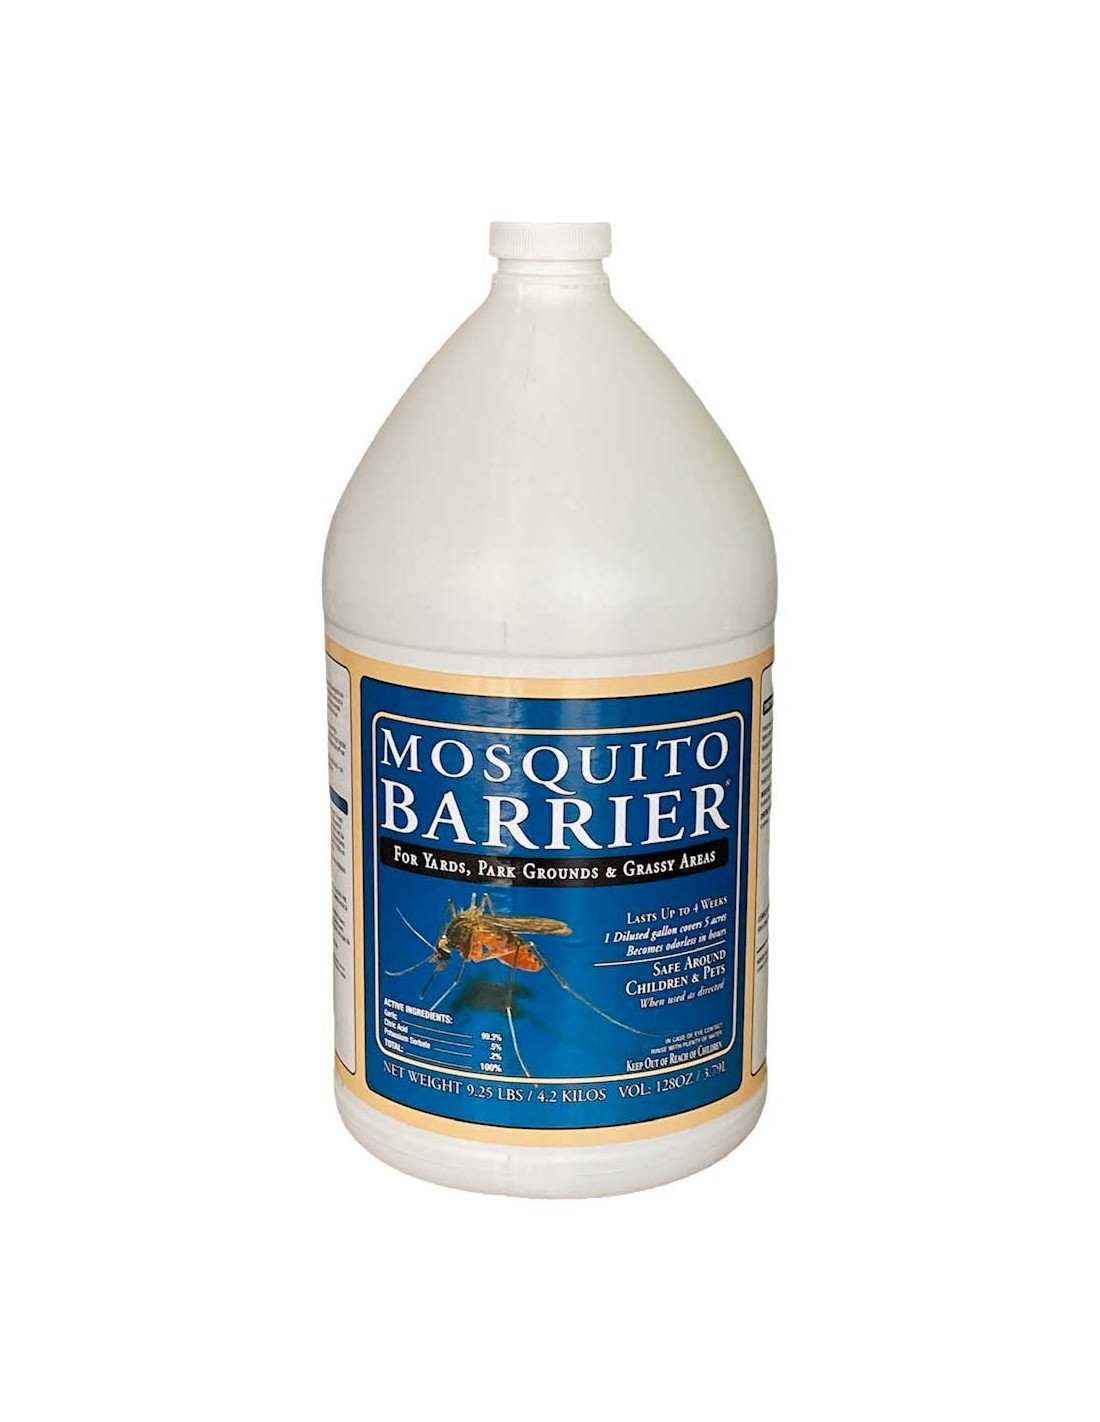 Mosquito Barrier Garlic Oil Repellent Questions & Answers